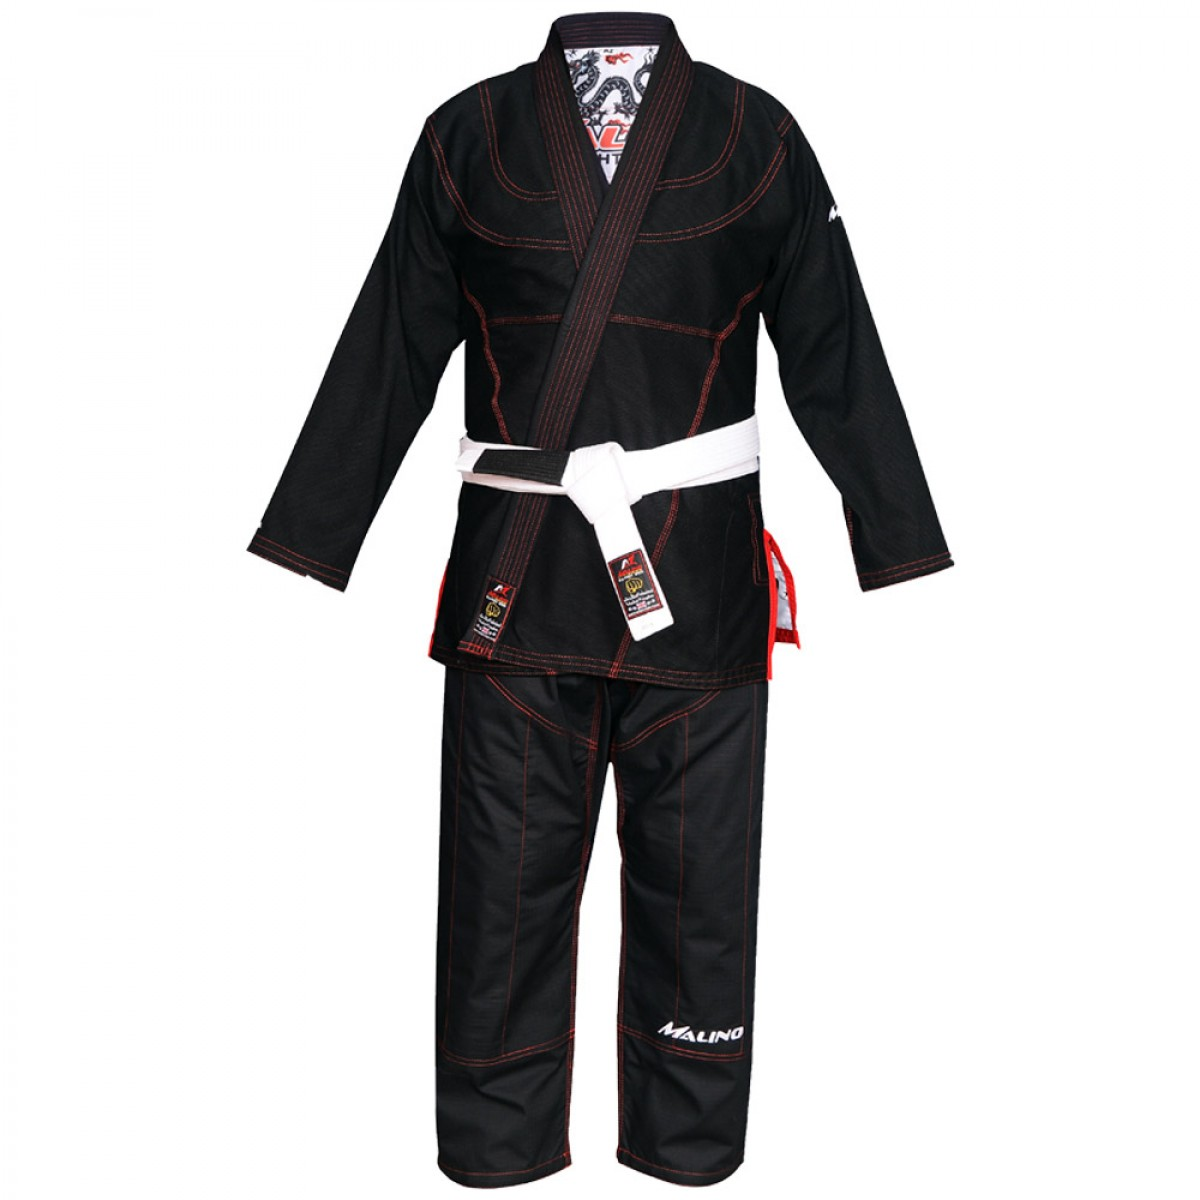 Malino BJJ Gi Bull Dragon Black Pearl Weave Cotton 350Gsm